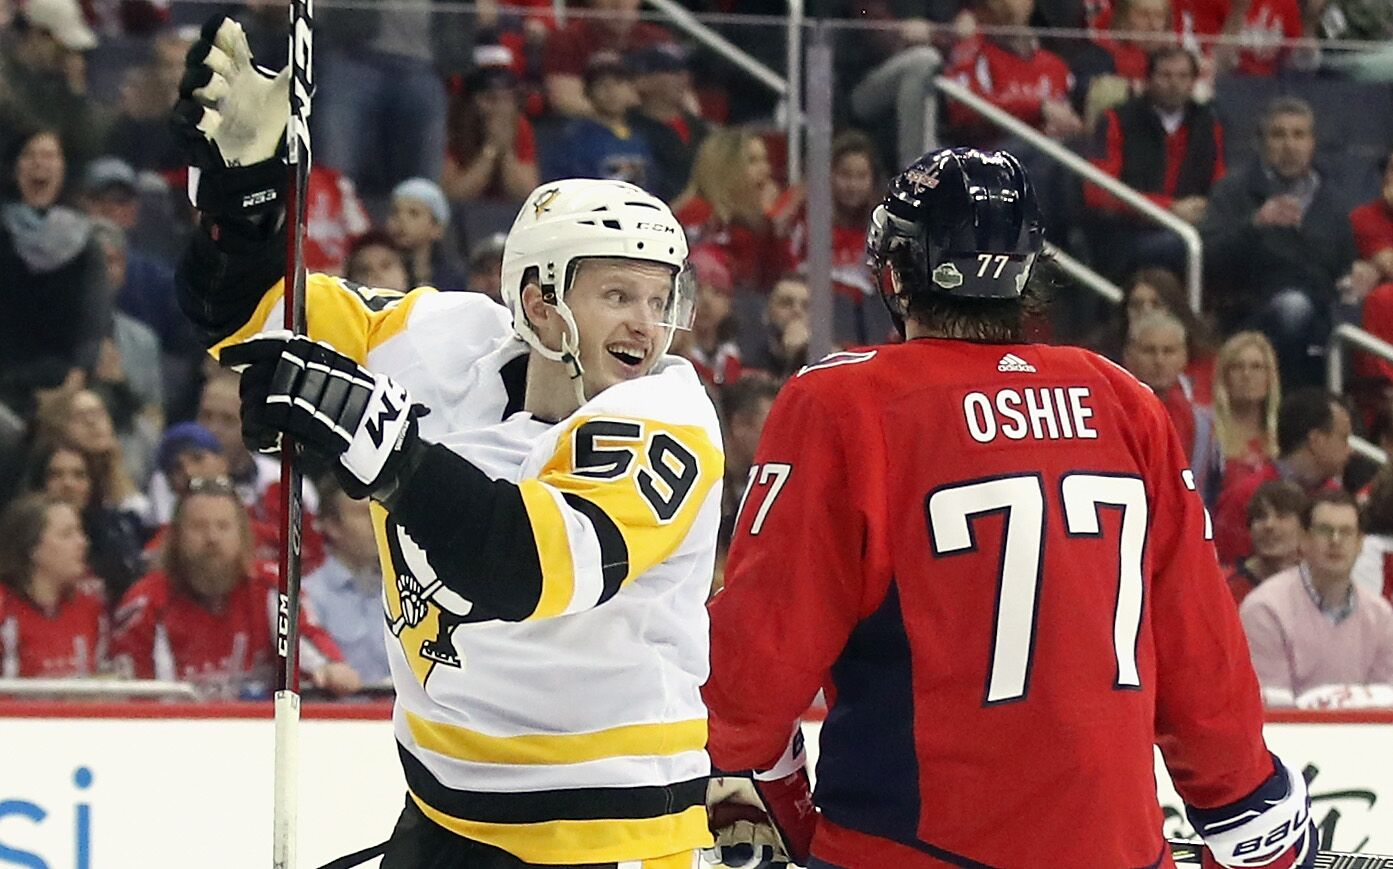 Capitals vs. Penguins live stream 796adcb758e